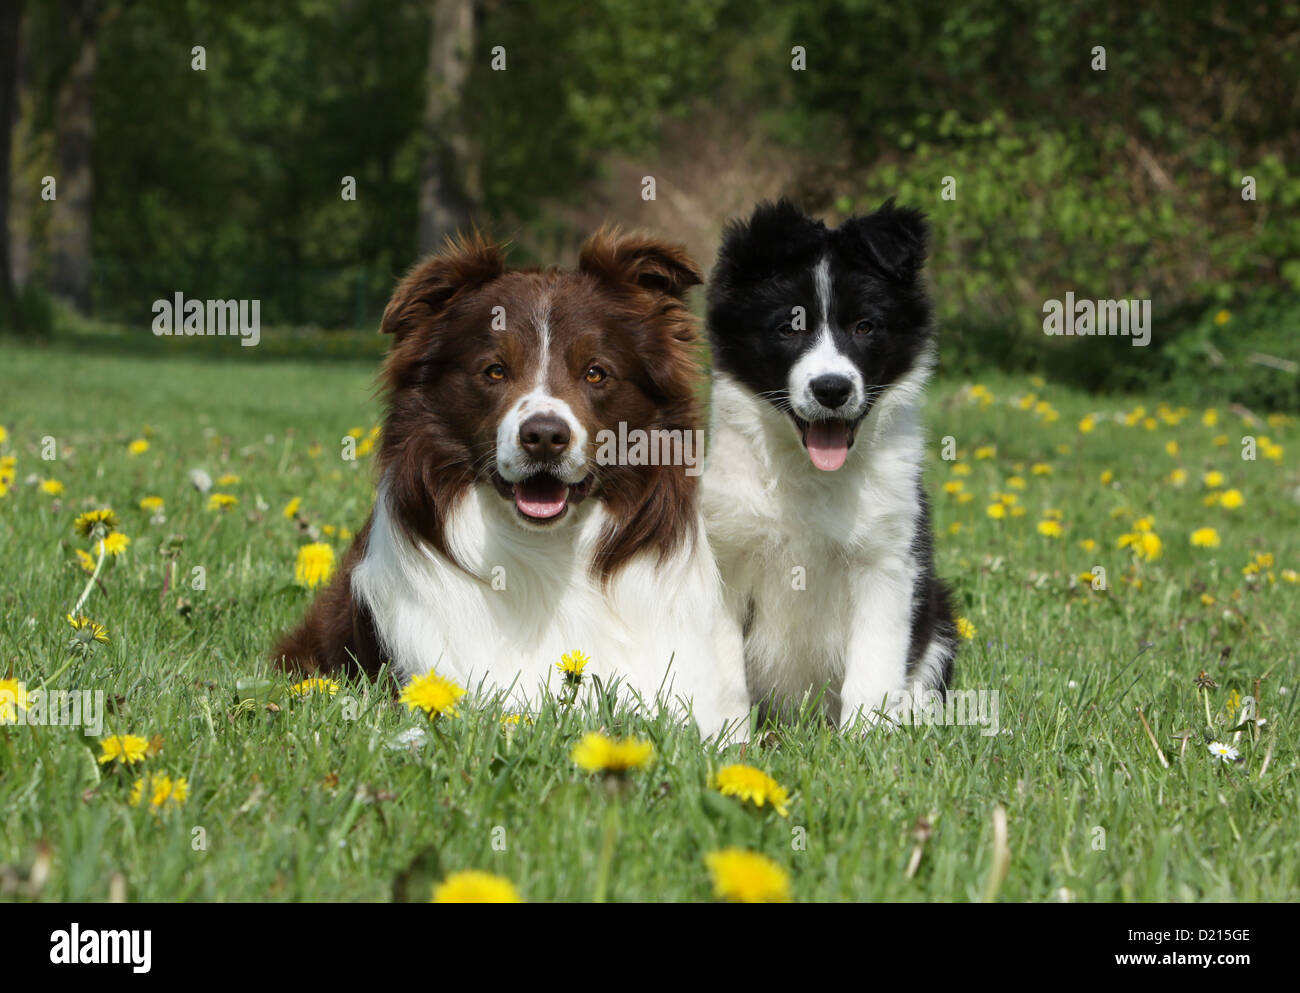 Dog Border Collie Adult Red And White And Puppy Black And White